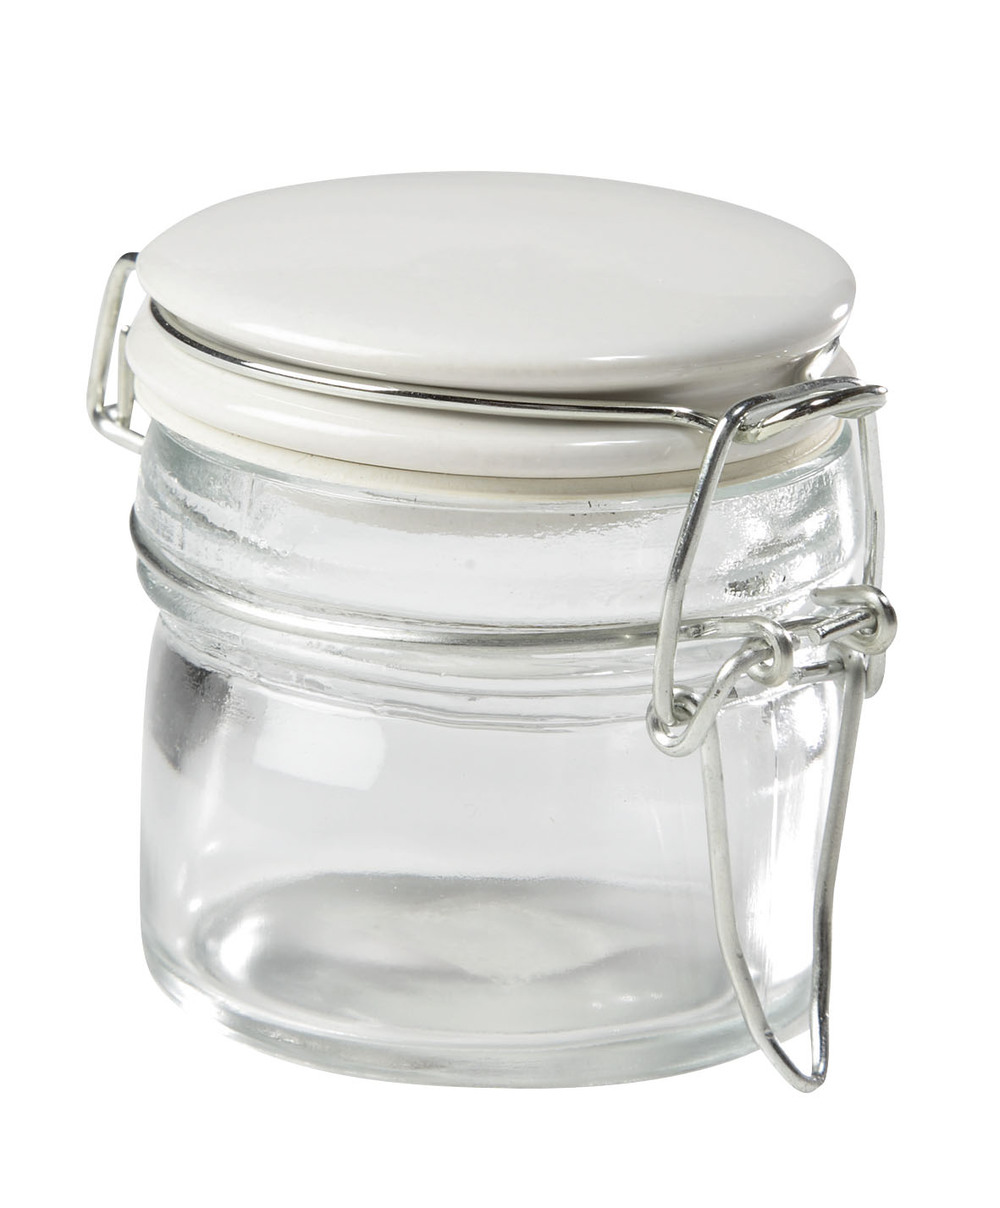 Strawbridge Storage Jar €2.95  Product Code: Comp-1620